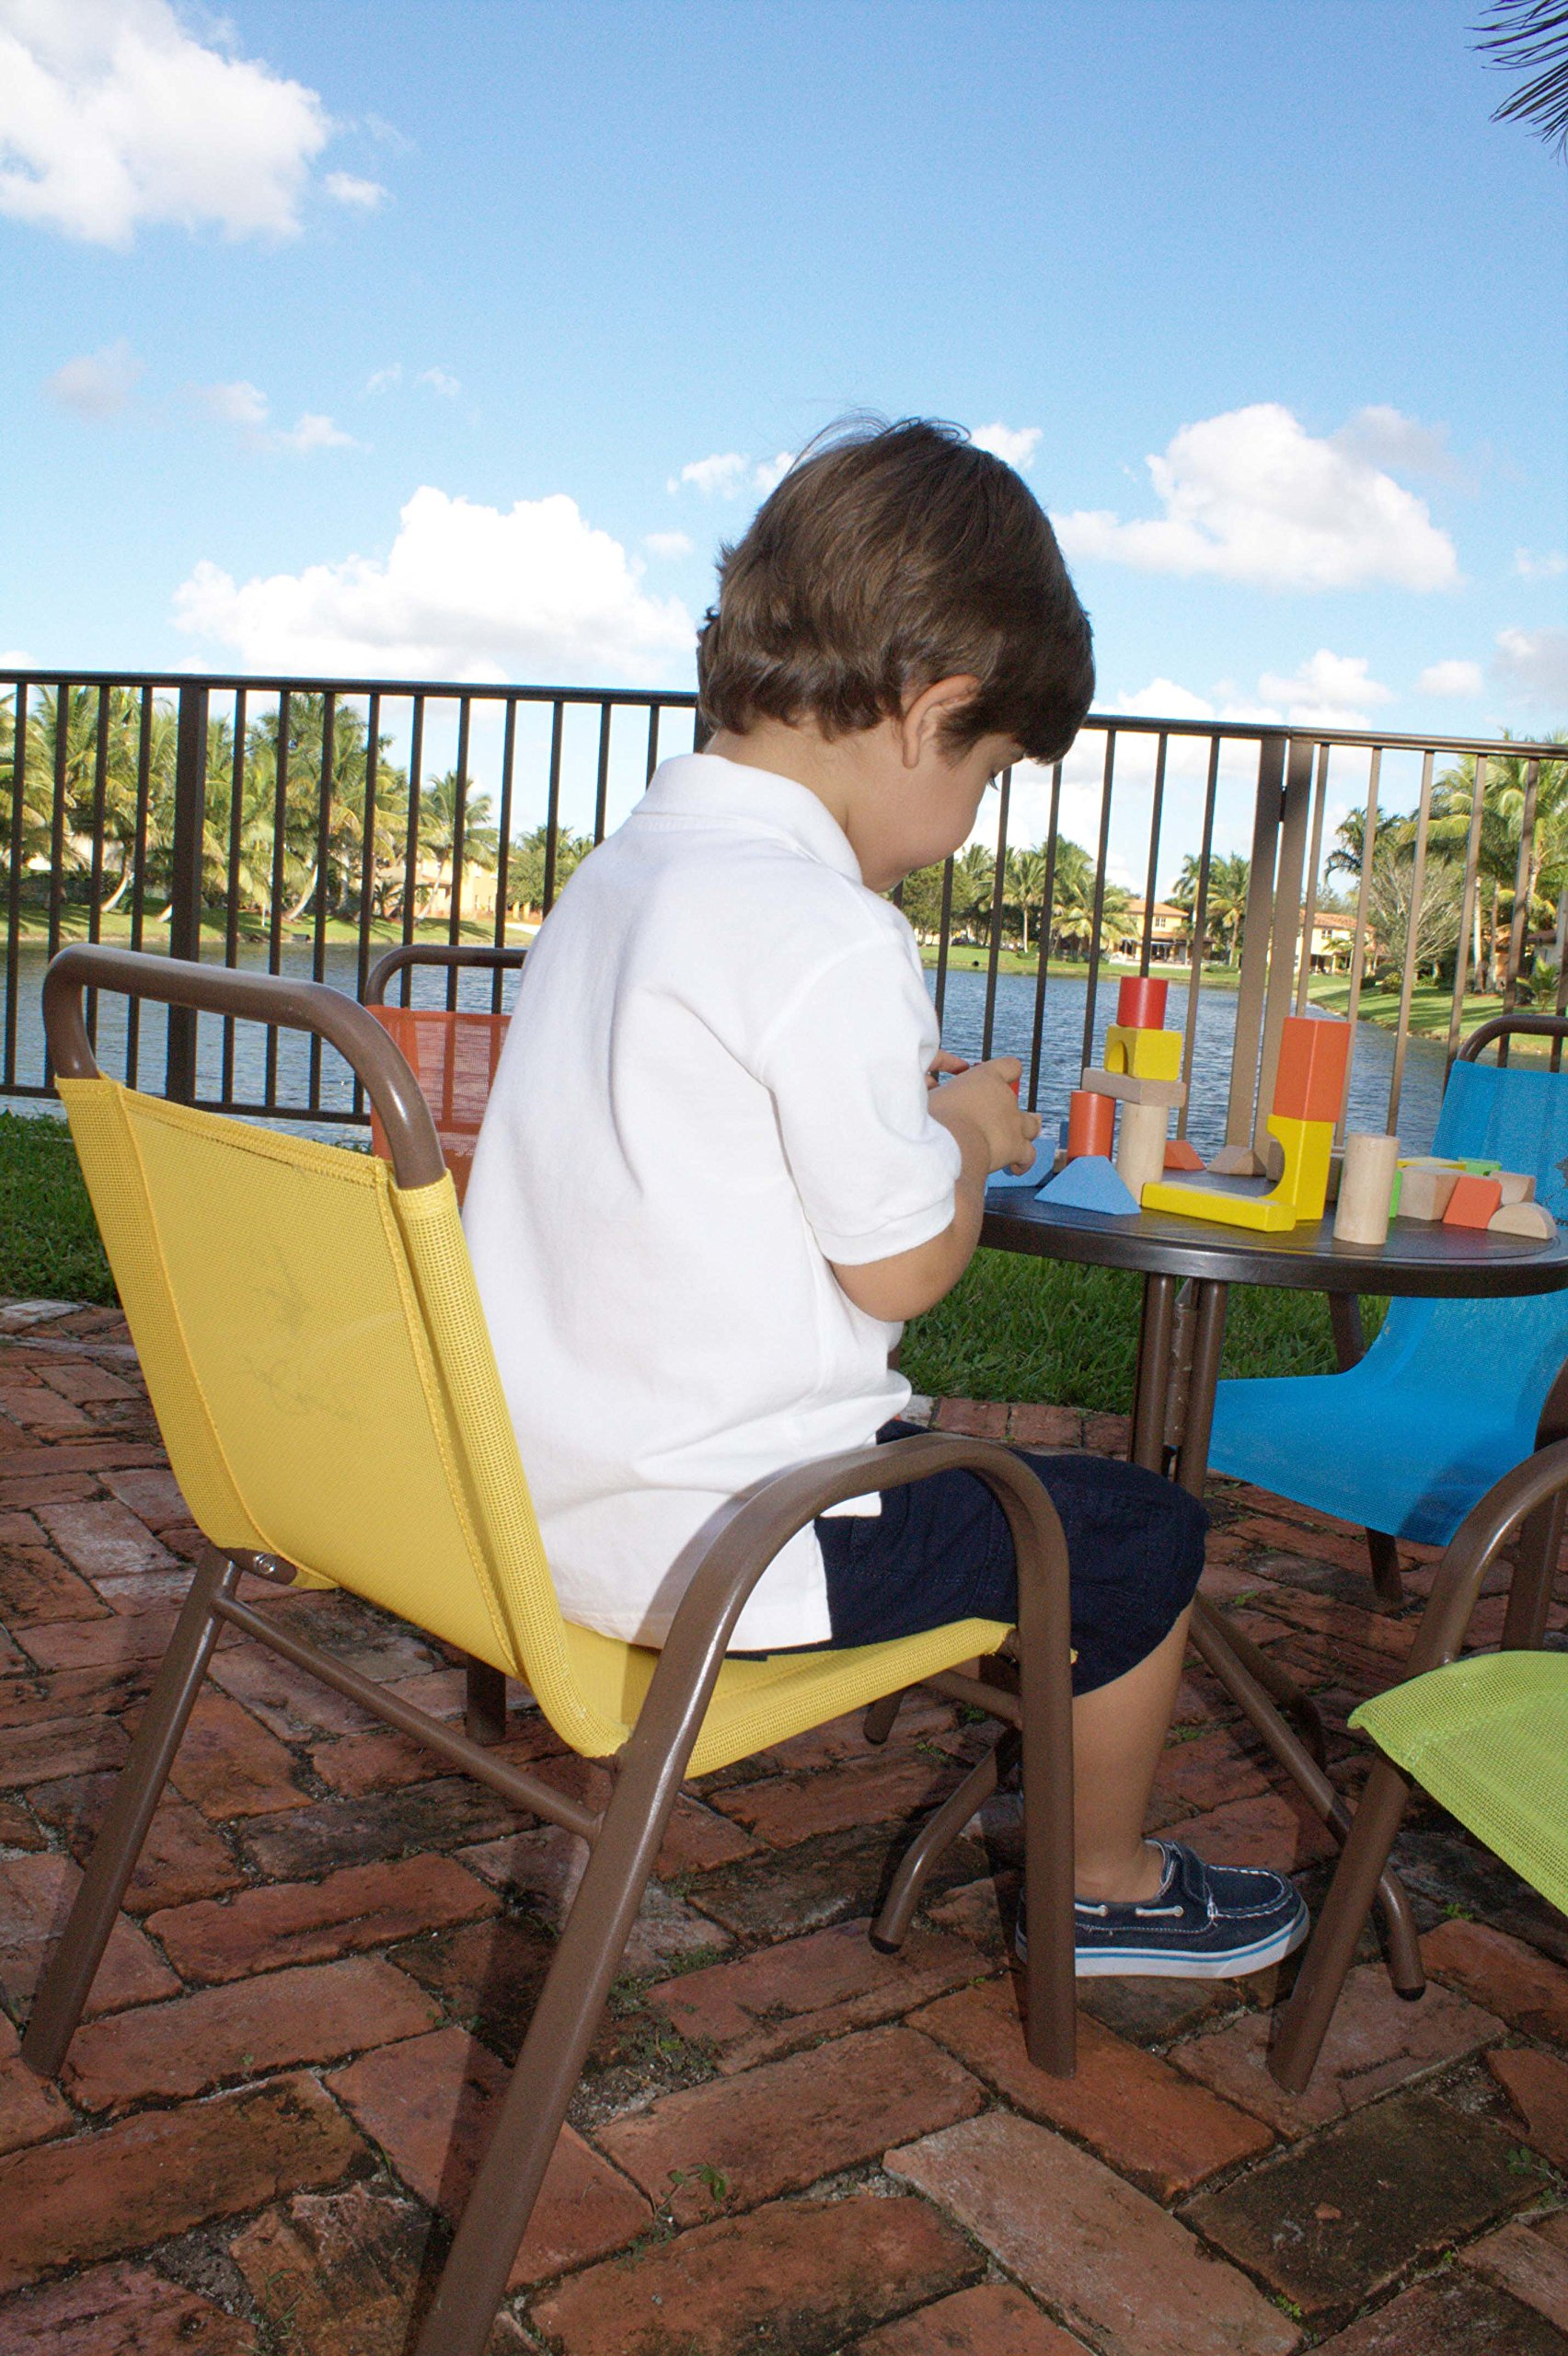 Panama Jack Kids 5-Piece Outdoor Dining Set, Multicolored by Panama Jack Kids (Image #8)